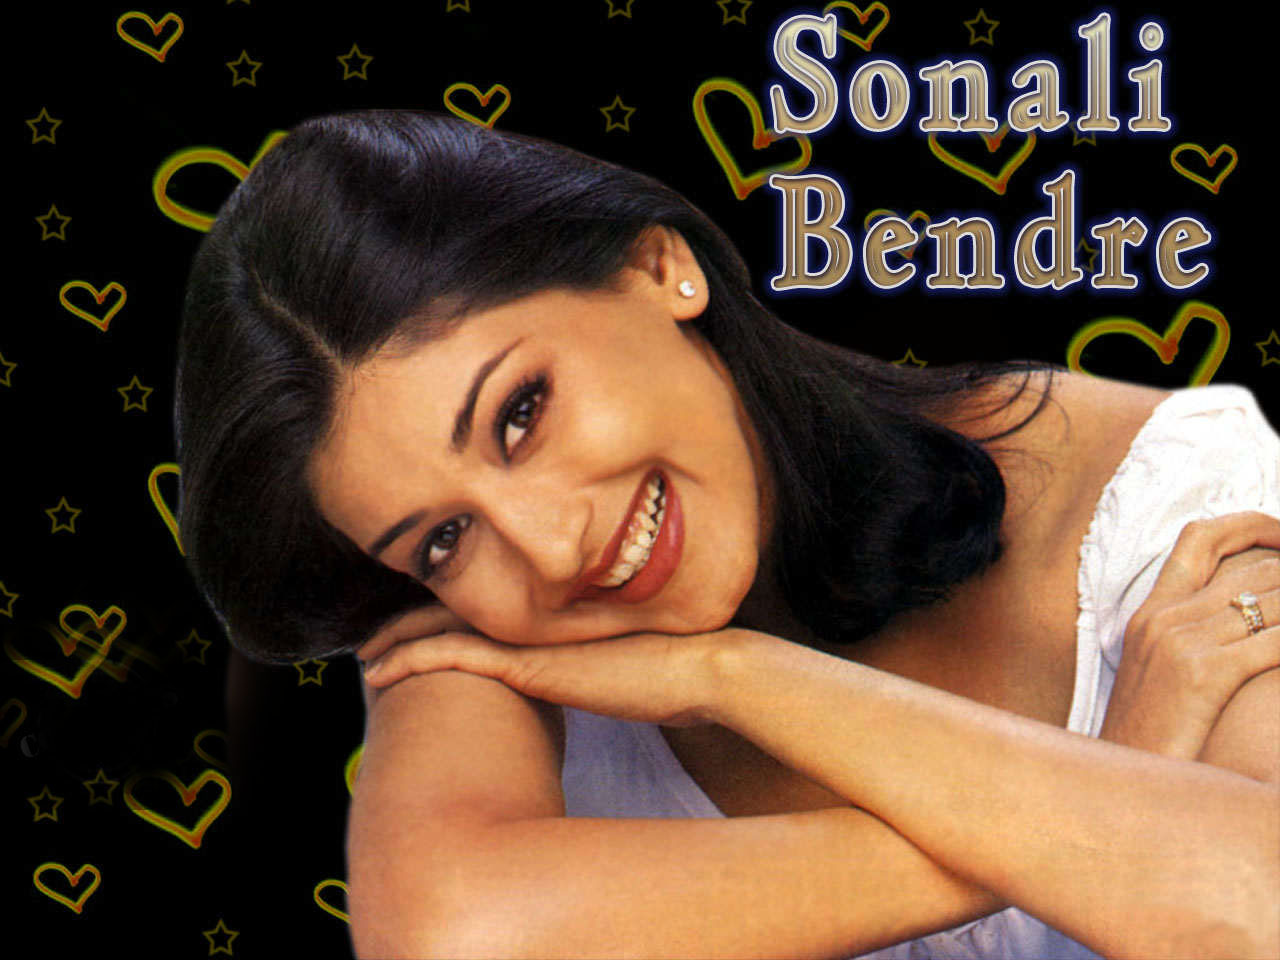 Sonali Bendre Hottest Photo  Hd Bollywood Photos-1720